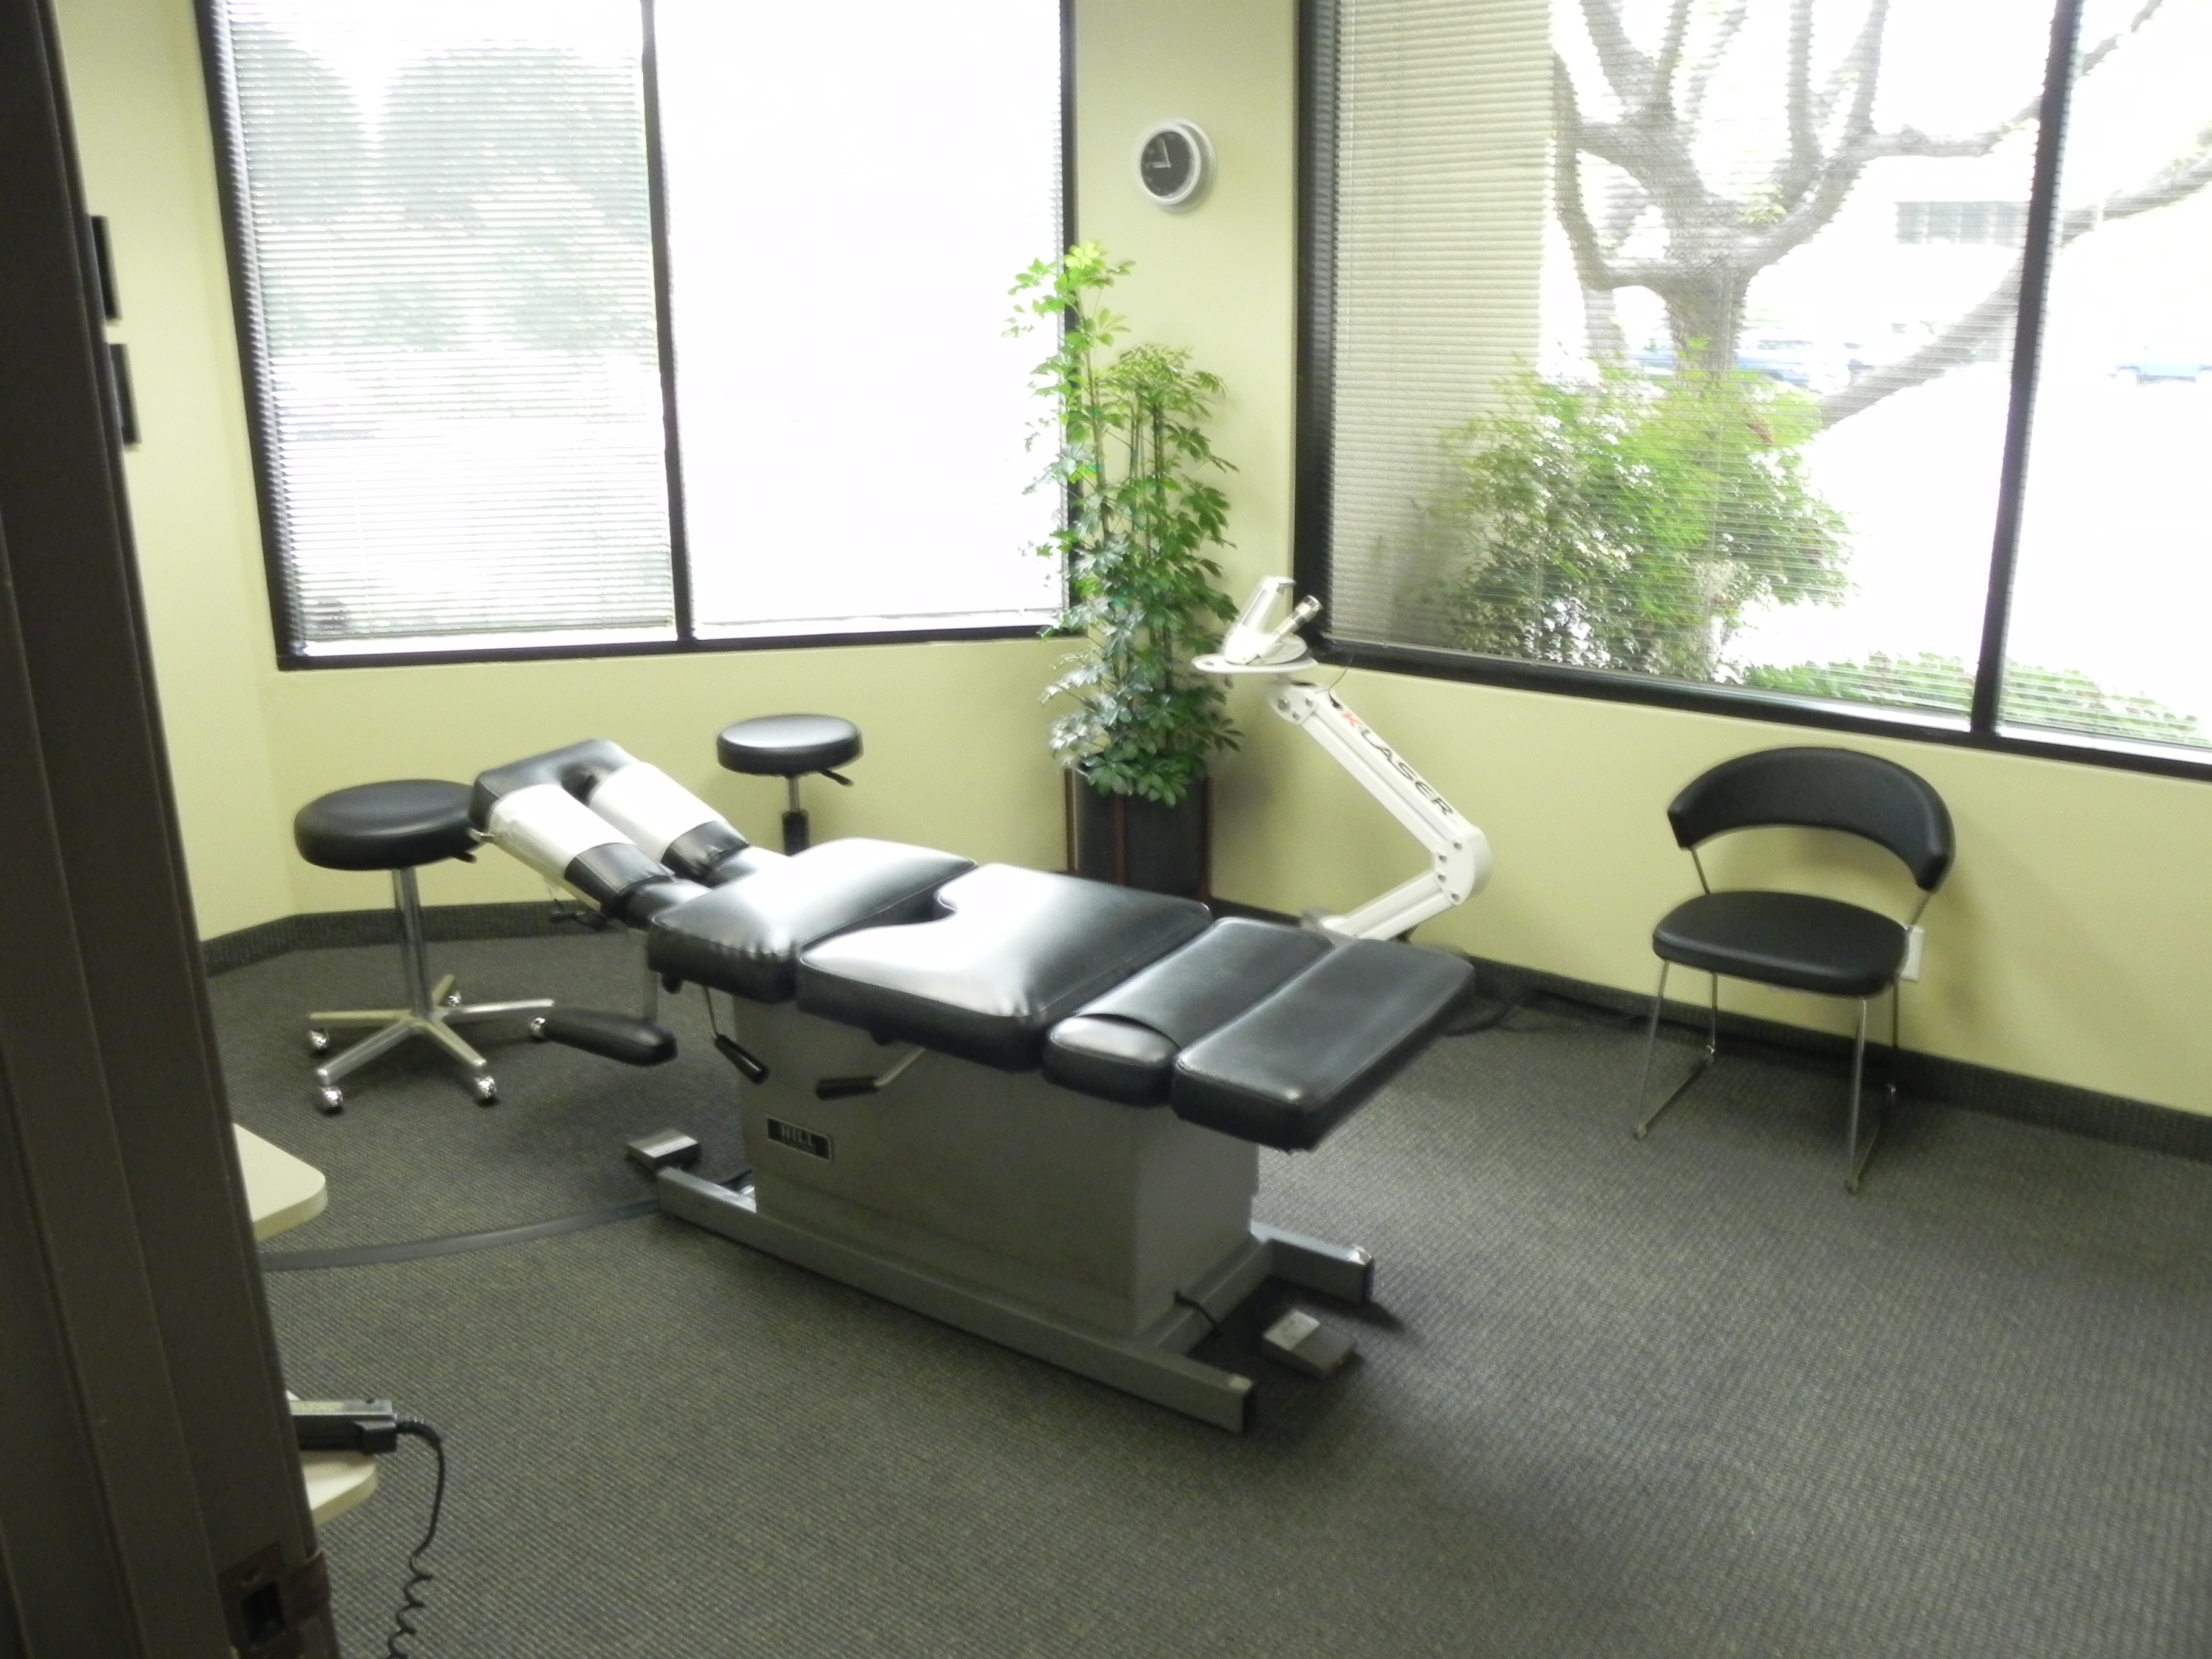 Chiropractic services in Orange, CA